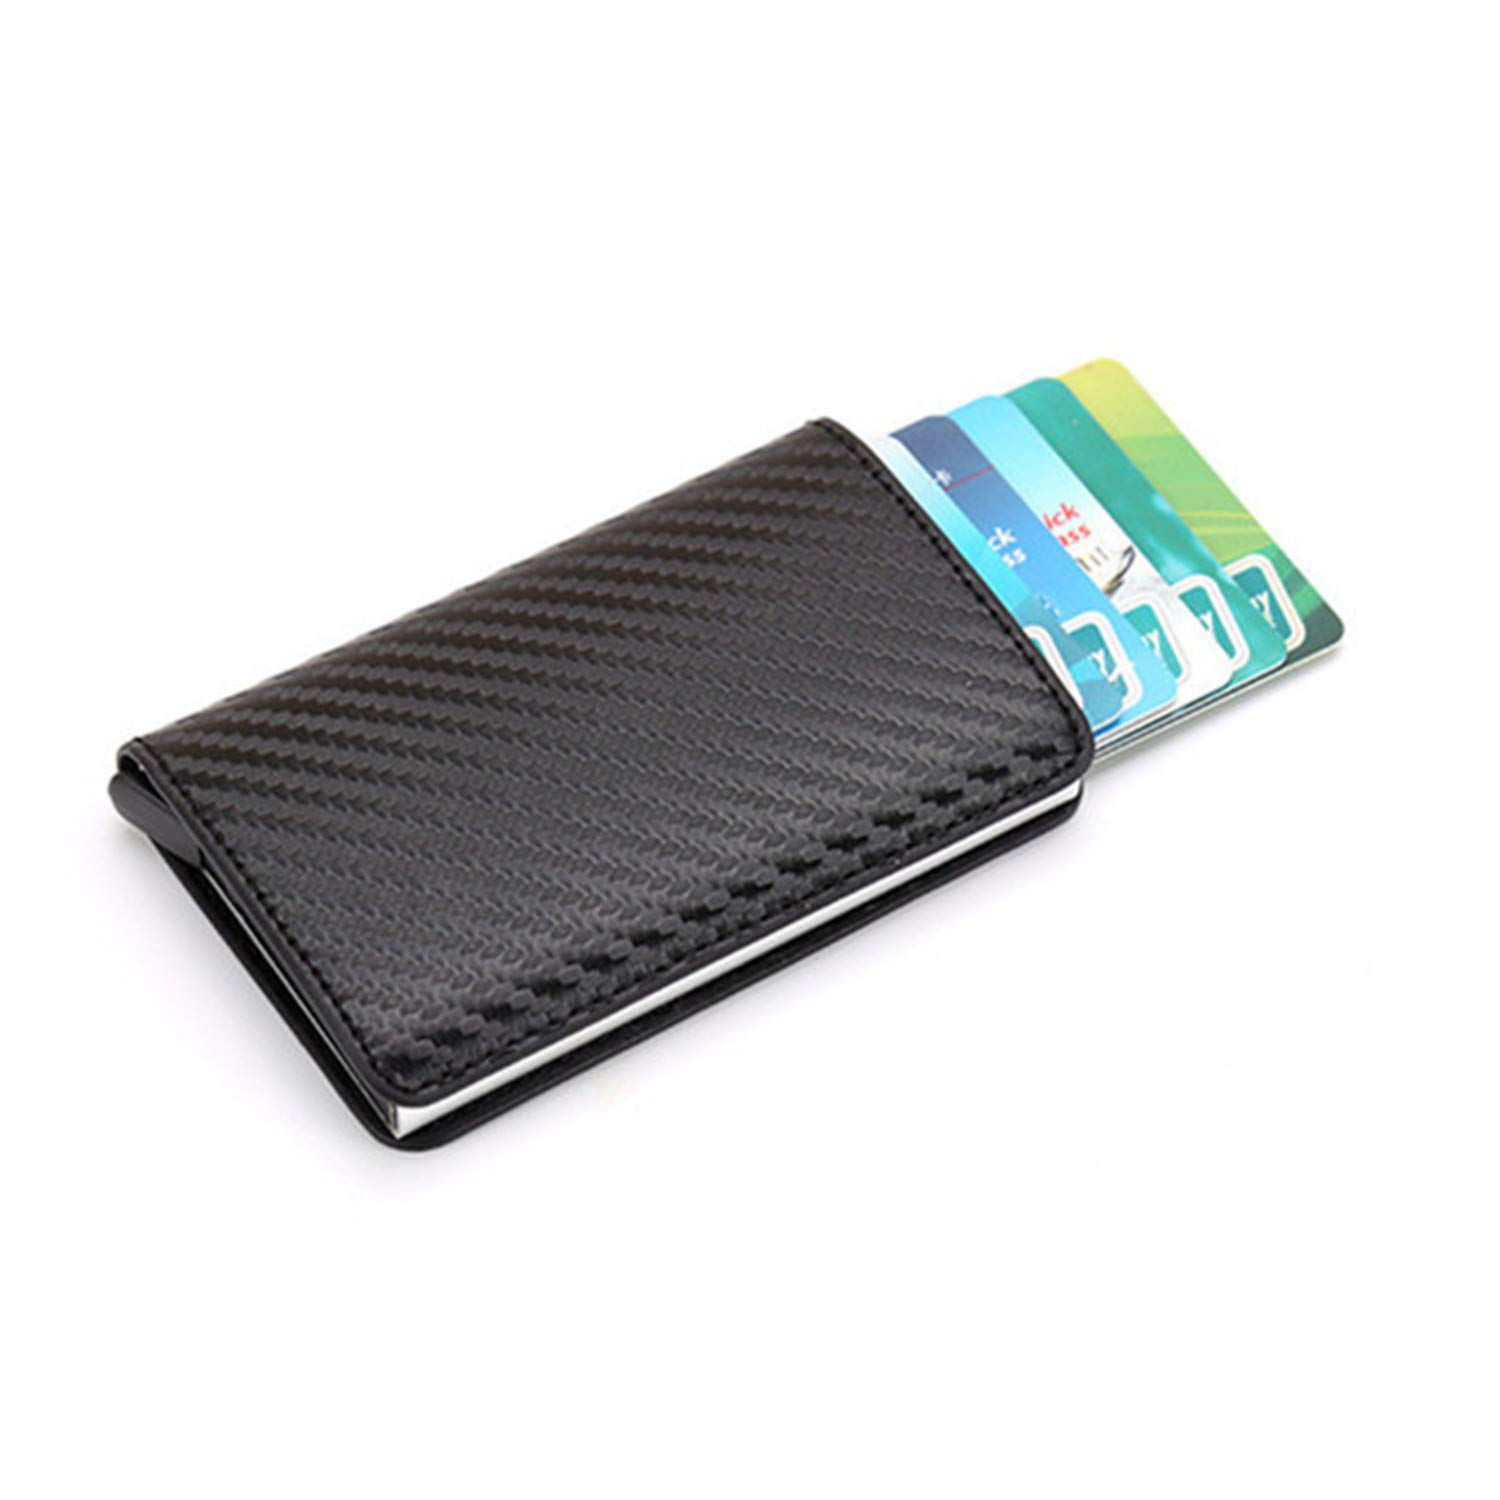 Clearance 2019 New Aluminum Wallet Credit Card Holder Metal with RFID Blocking Slim Carbon Fiber Card ID Wallet